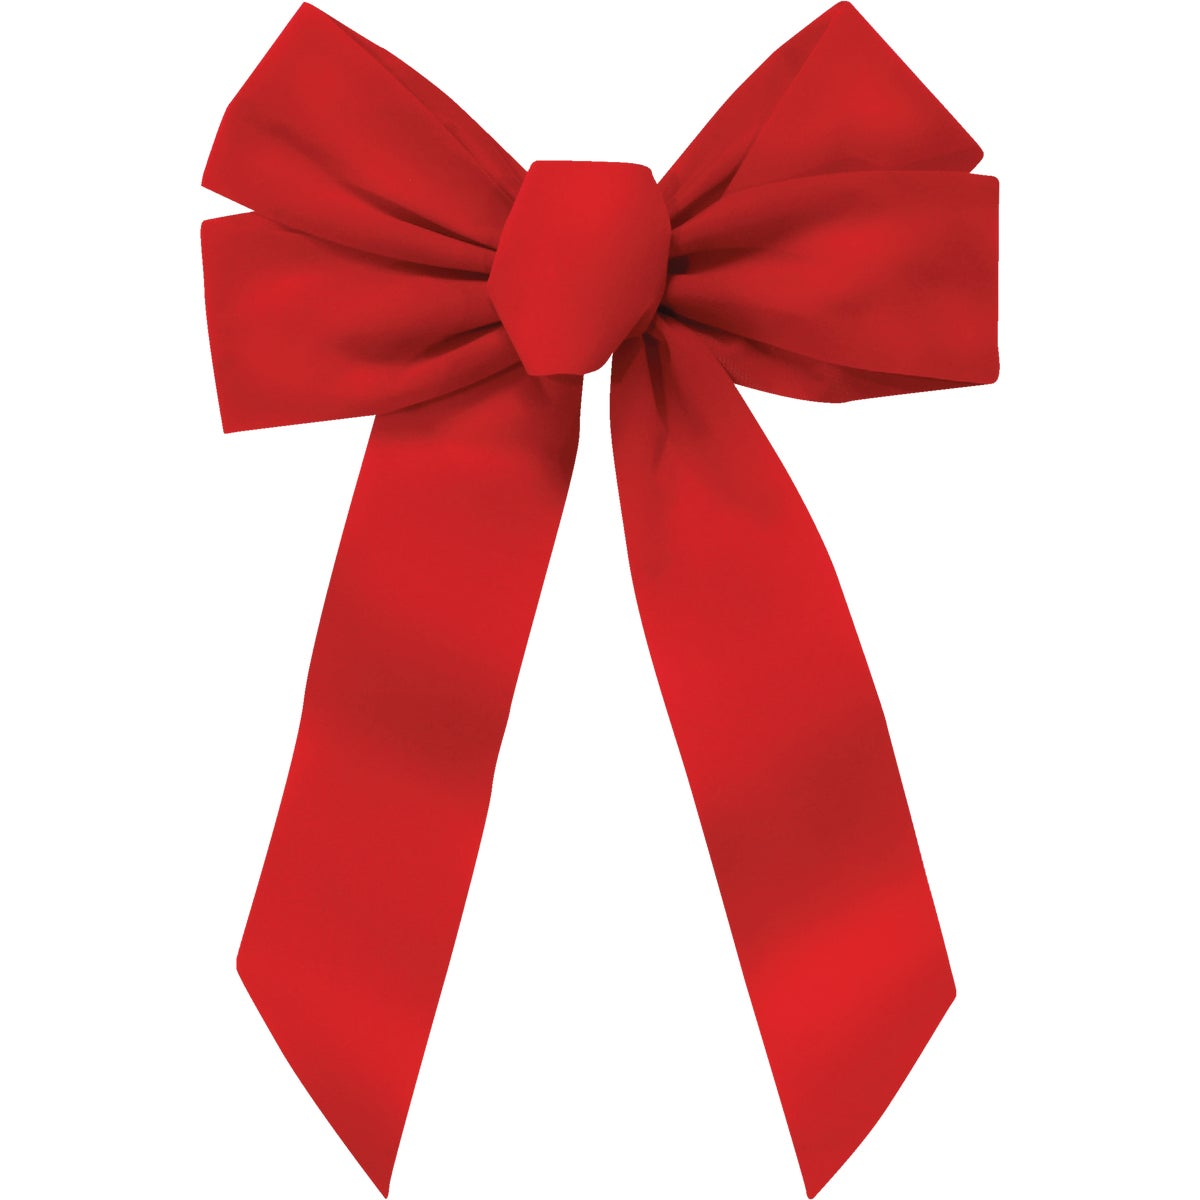 11X16 4 LOOP RED BOW - 4110P48-A621 by Dyno Seasonal  Tx